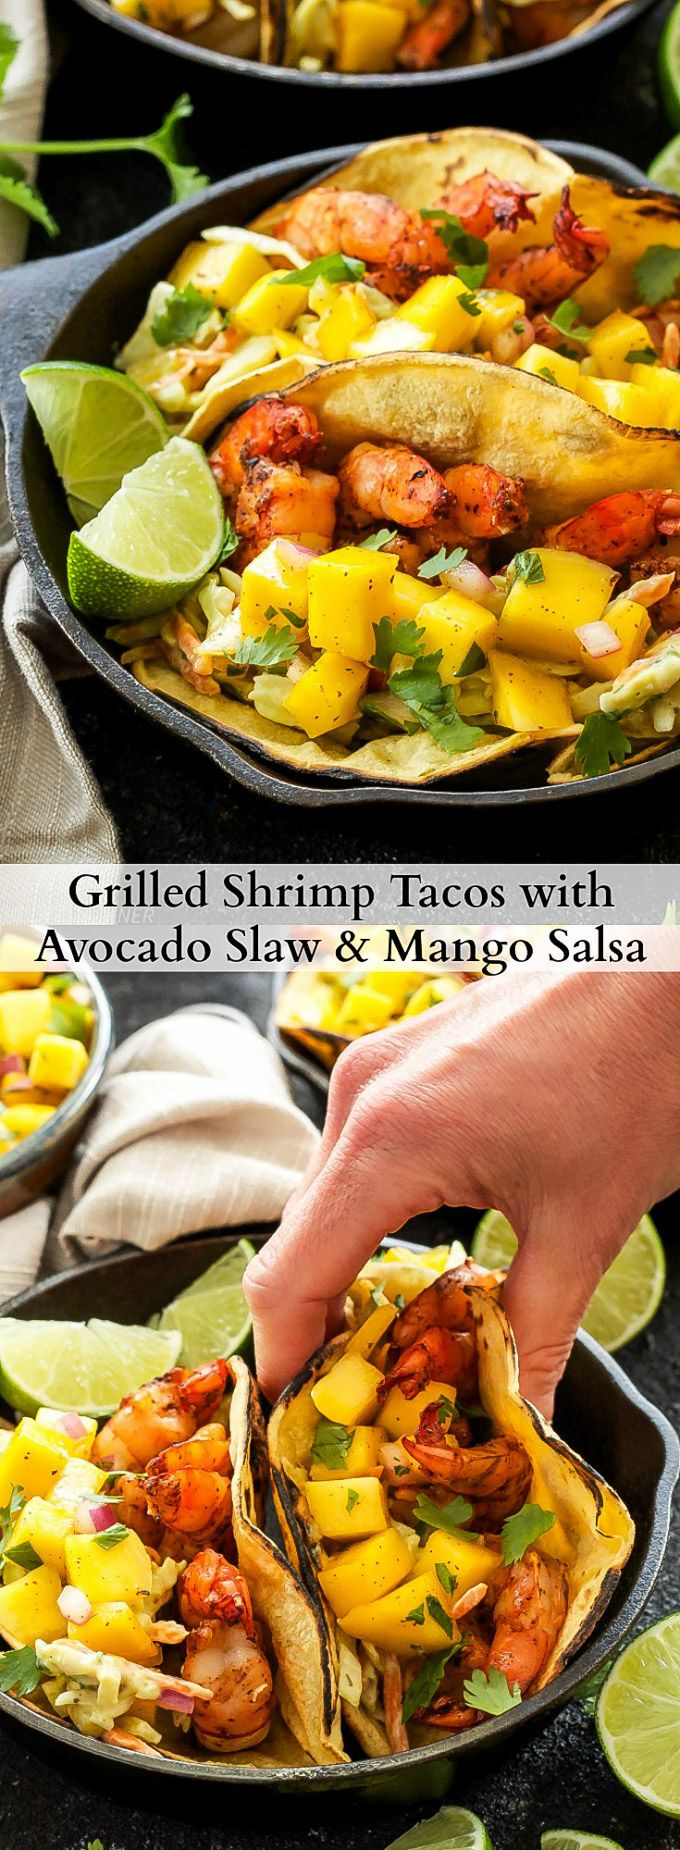 Grilled Shrimp Tacos with Avocado Slaw and Mango Salsa   Grilled shrimp tacos with fresh tropical toppings! Perfect for an easy summer dinner!